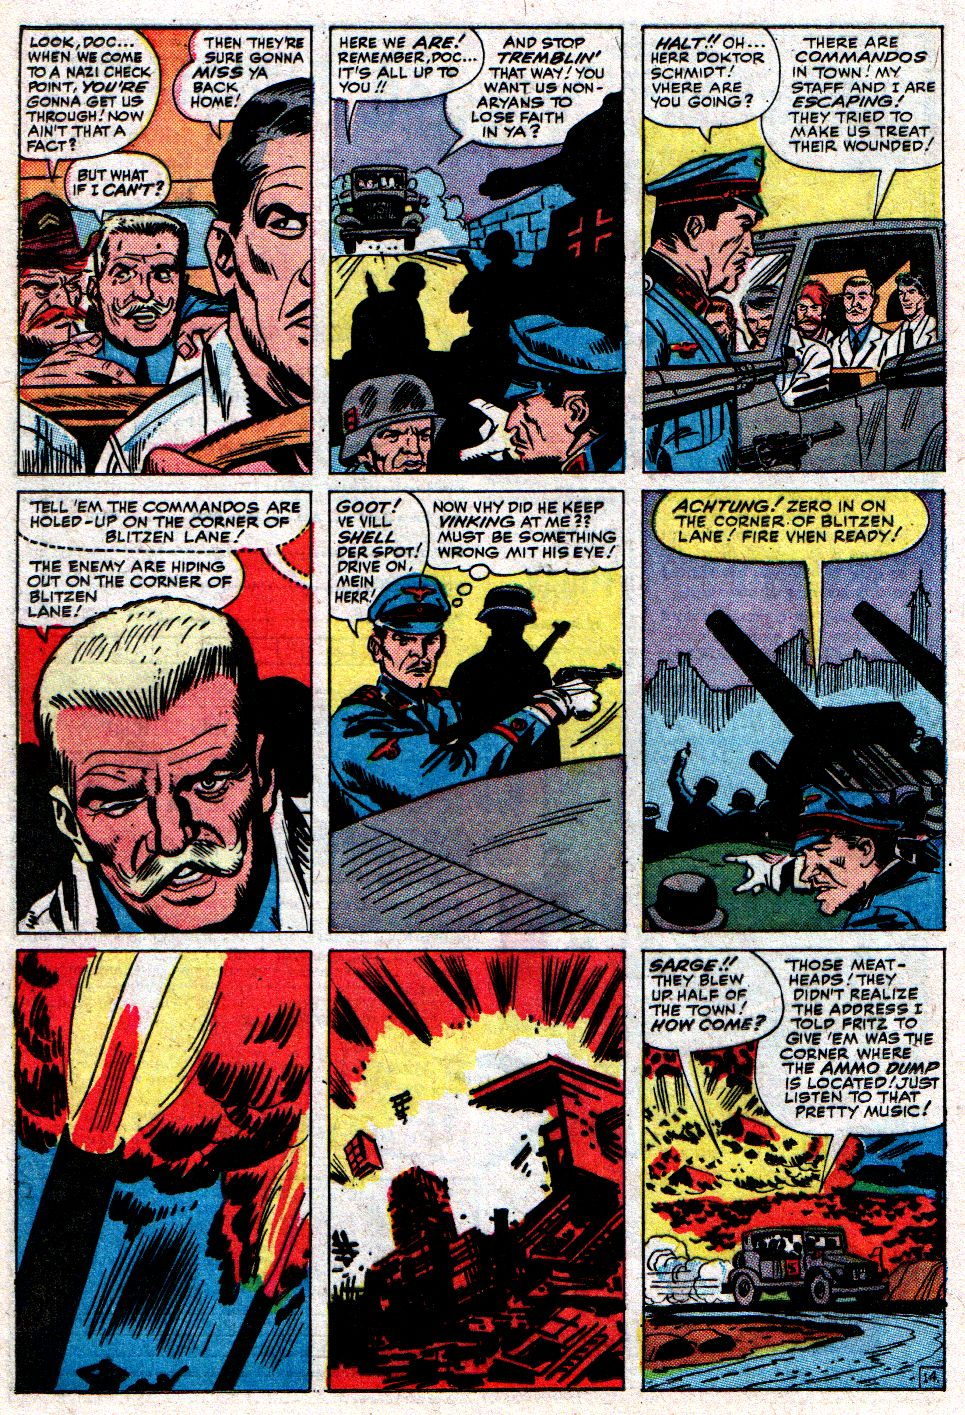 Read online Sgt. Fury comic -  Issue #8 - 20